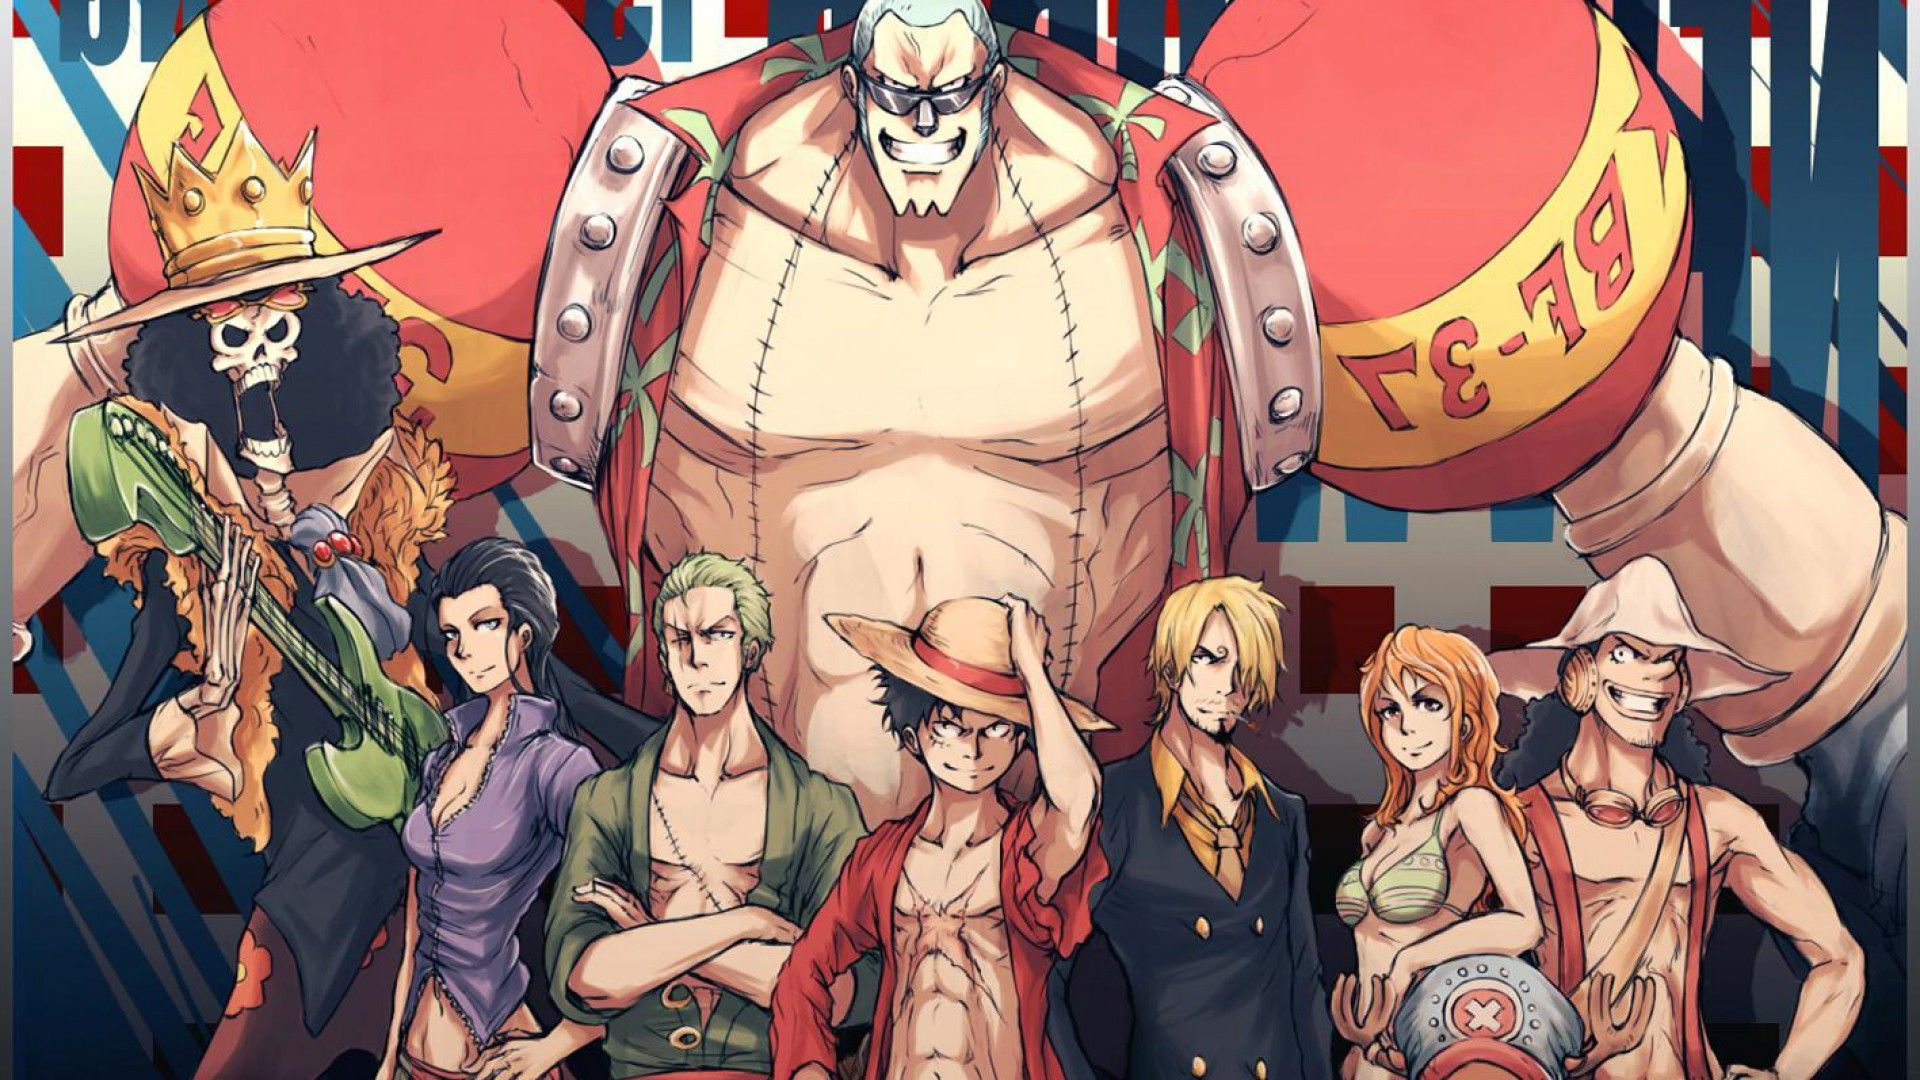 One Piece Wallpaper For Pc Anime Wallpaper In 2020 One Piece Anime One Piece Manga One Piece New World